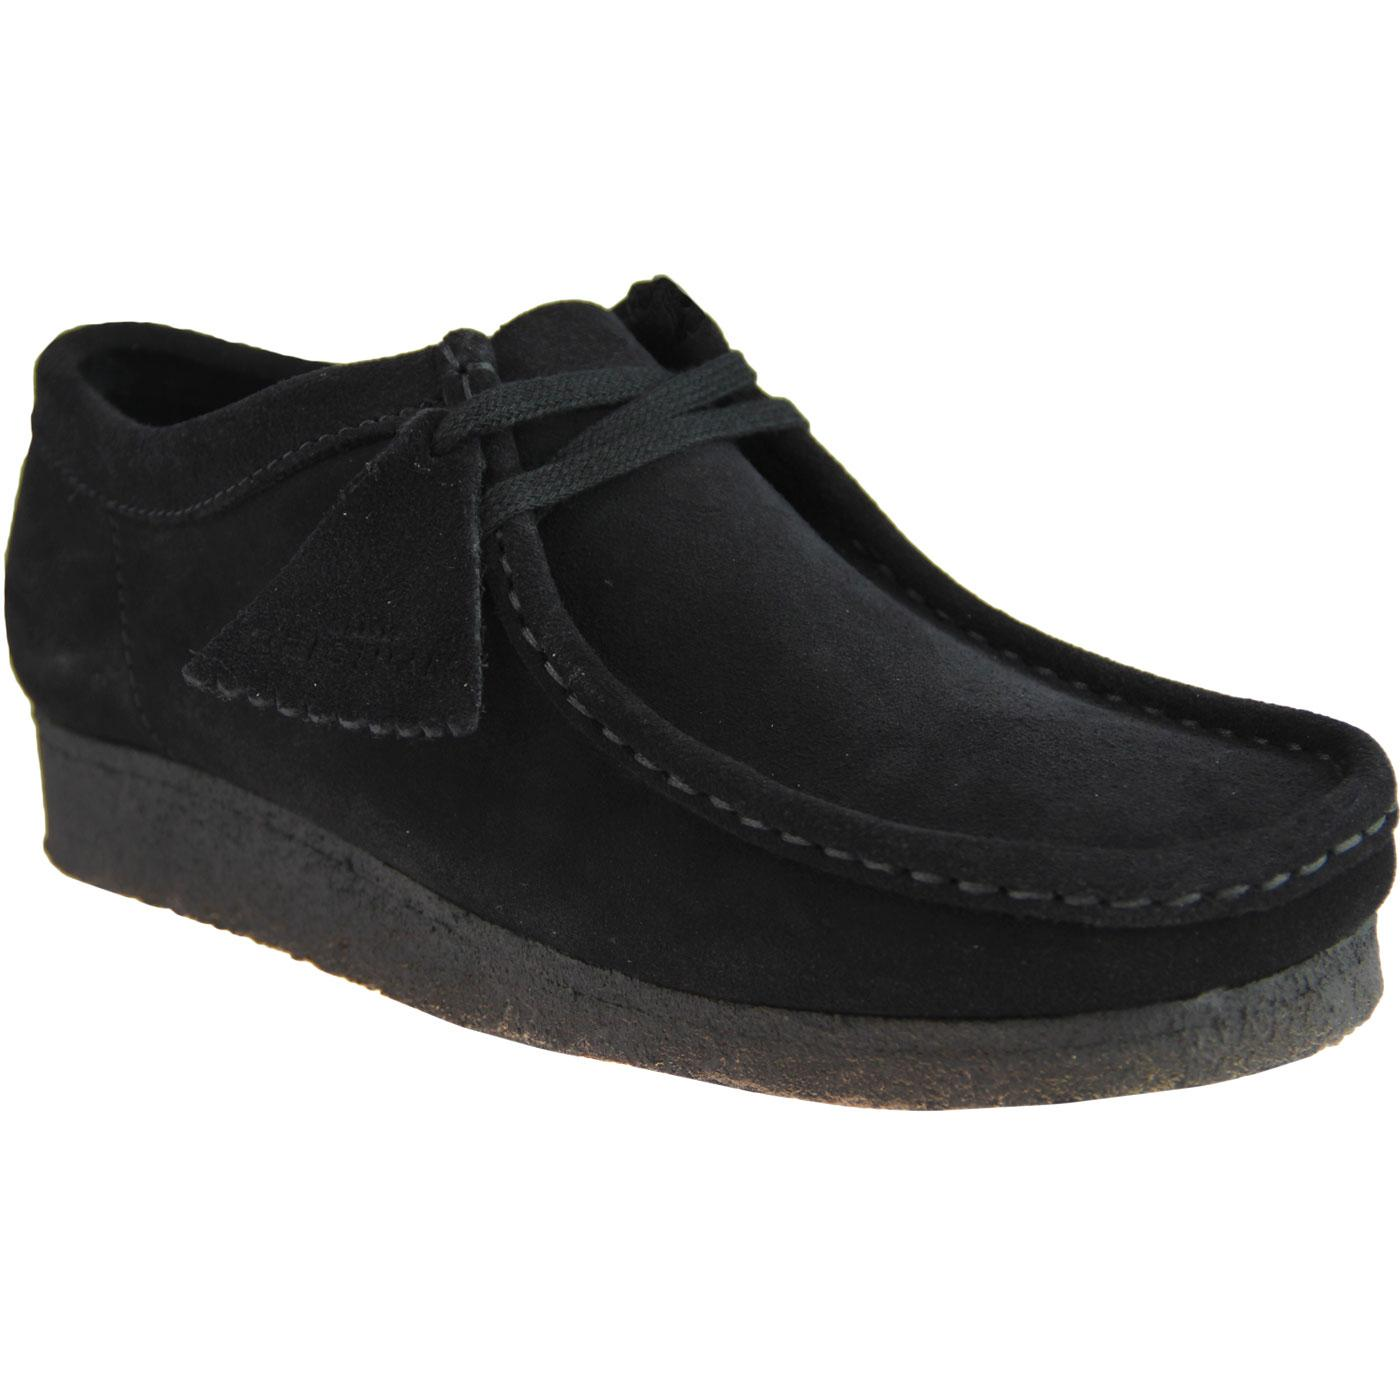 Wallabee CLARKS ORIGINALS Mod Moccasin Shoes Black